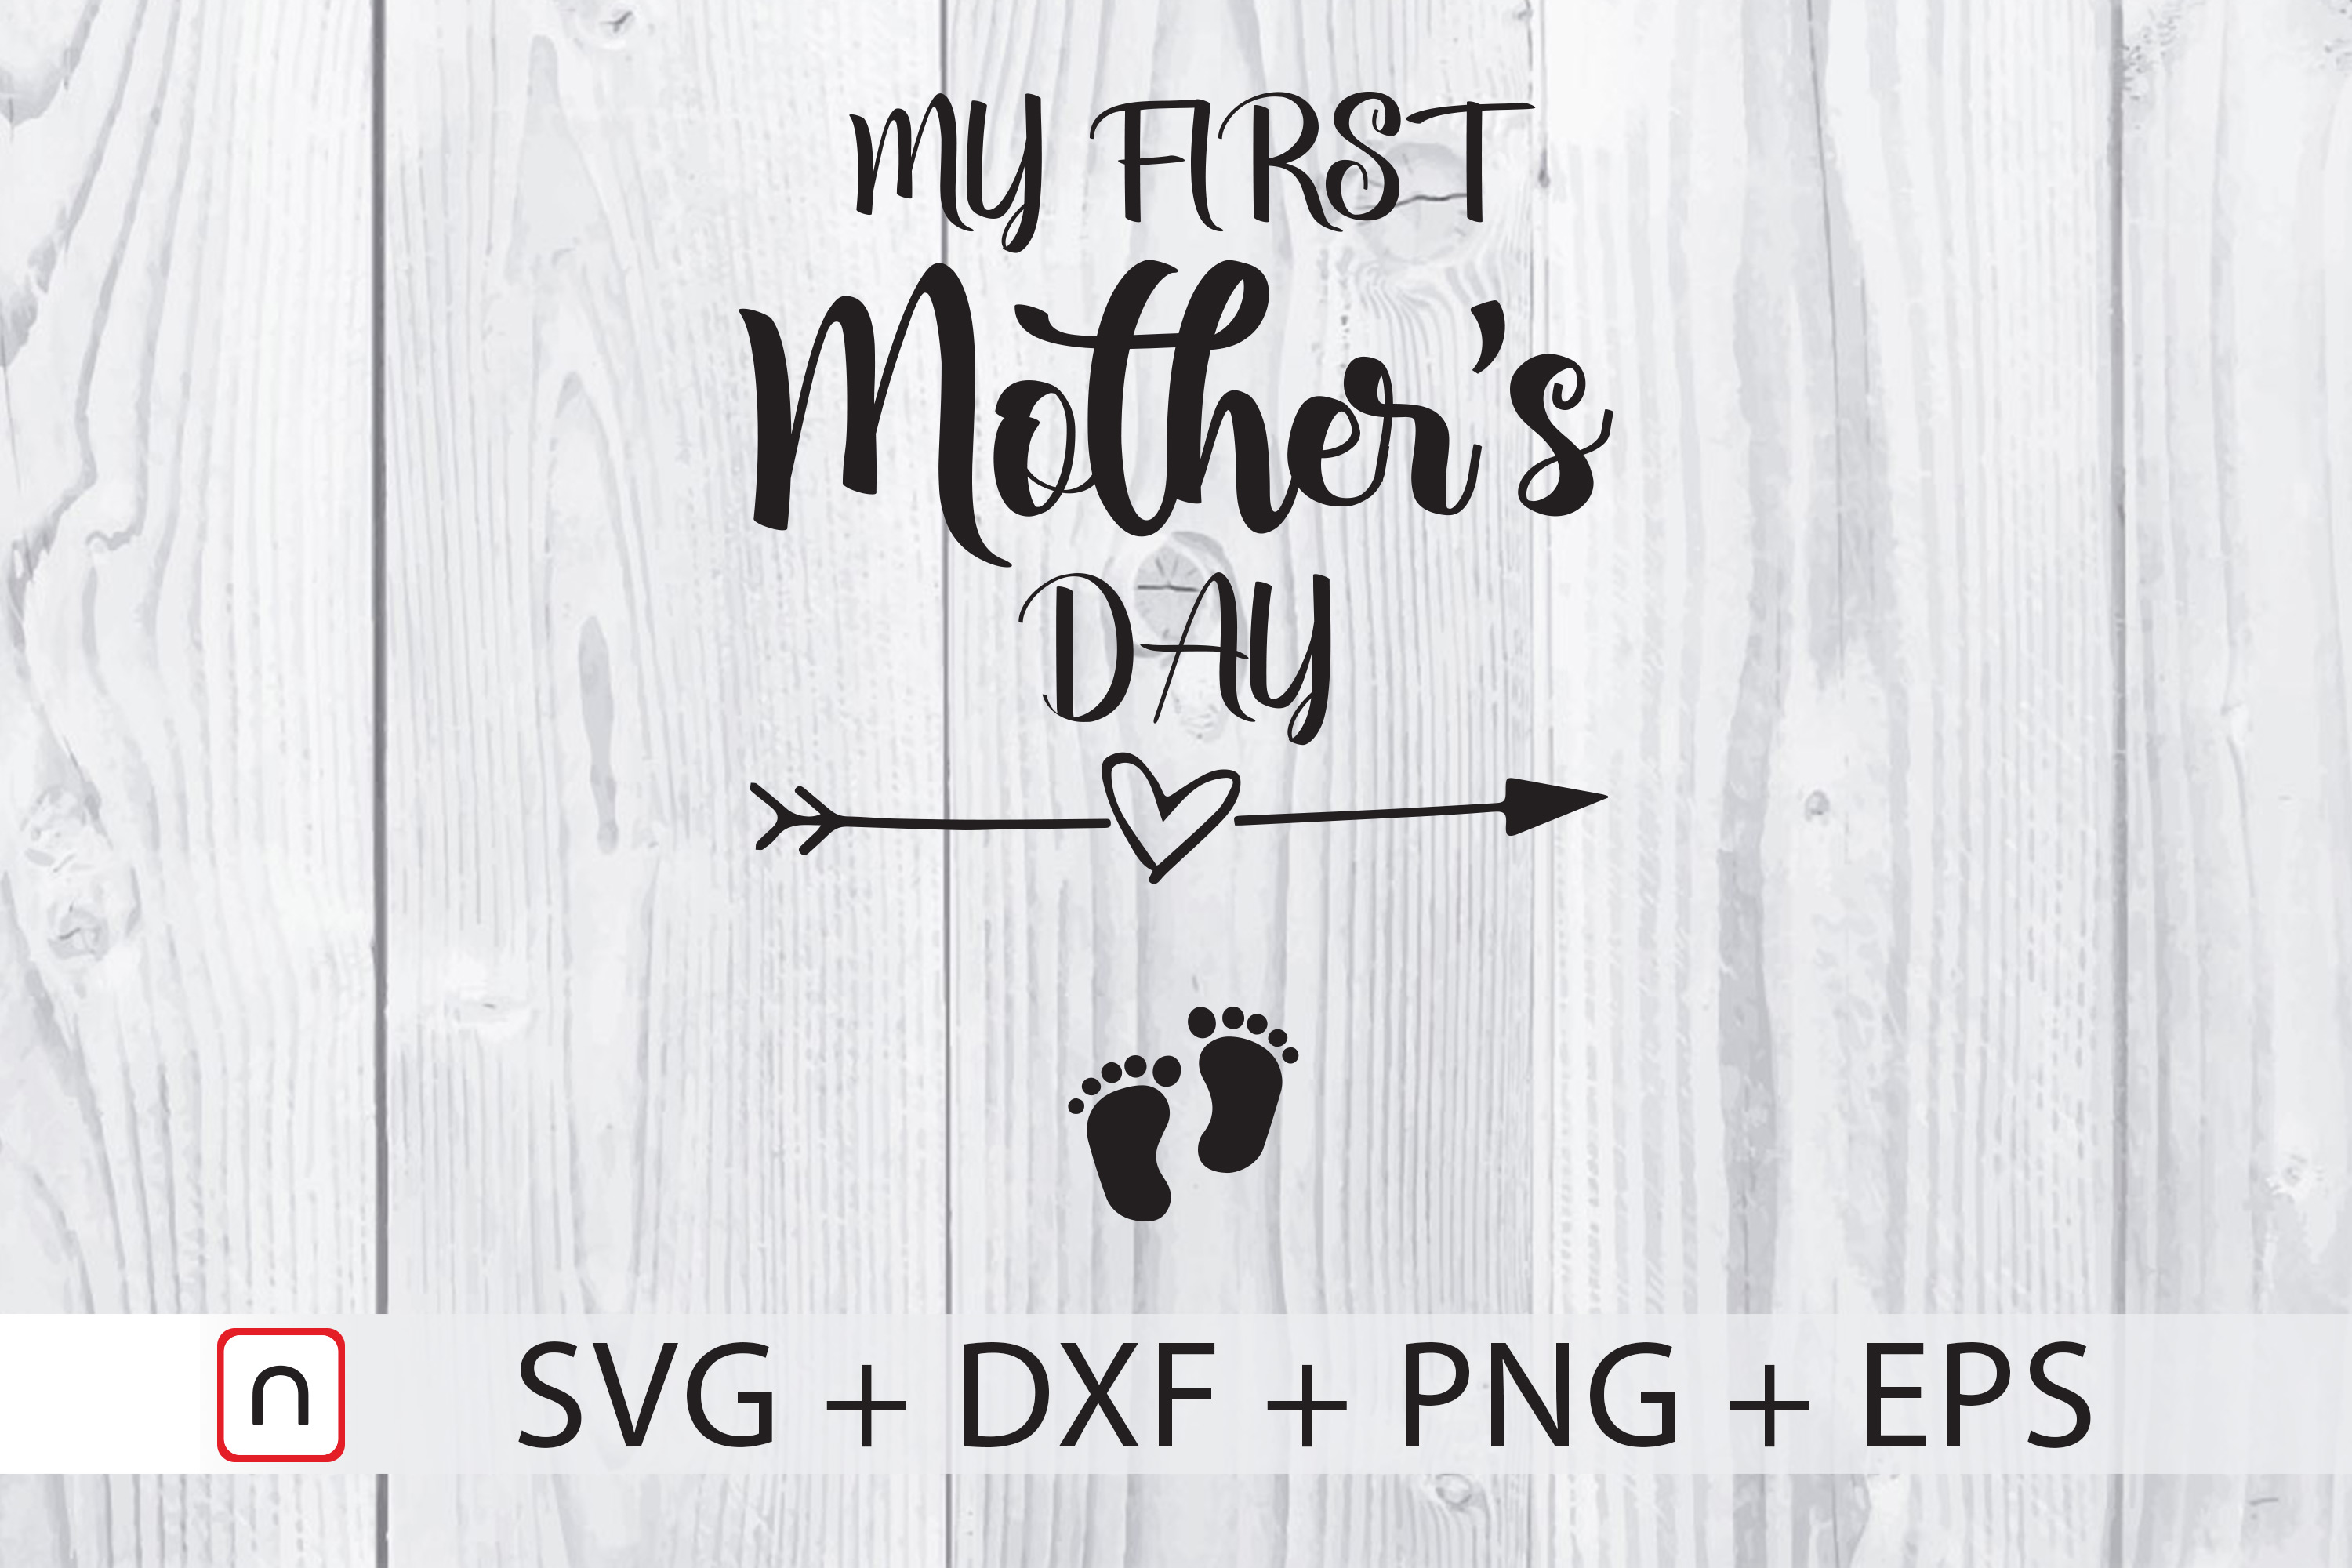 Download Free My First Mother S Day Graphic By Novalia Creative Fabrica for Cricut Explore, Silhouette and other cutting machines.